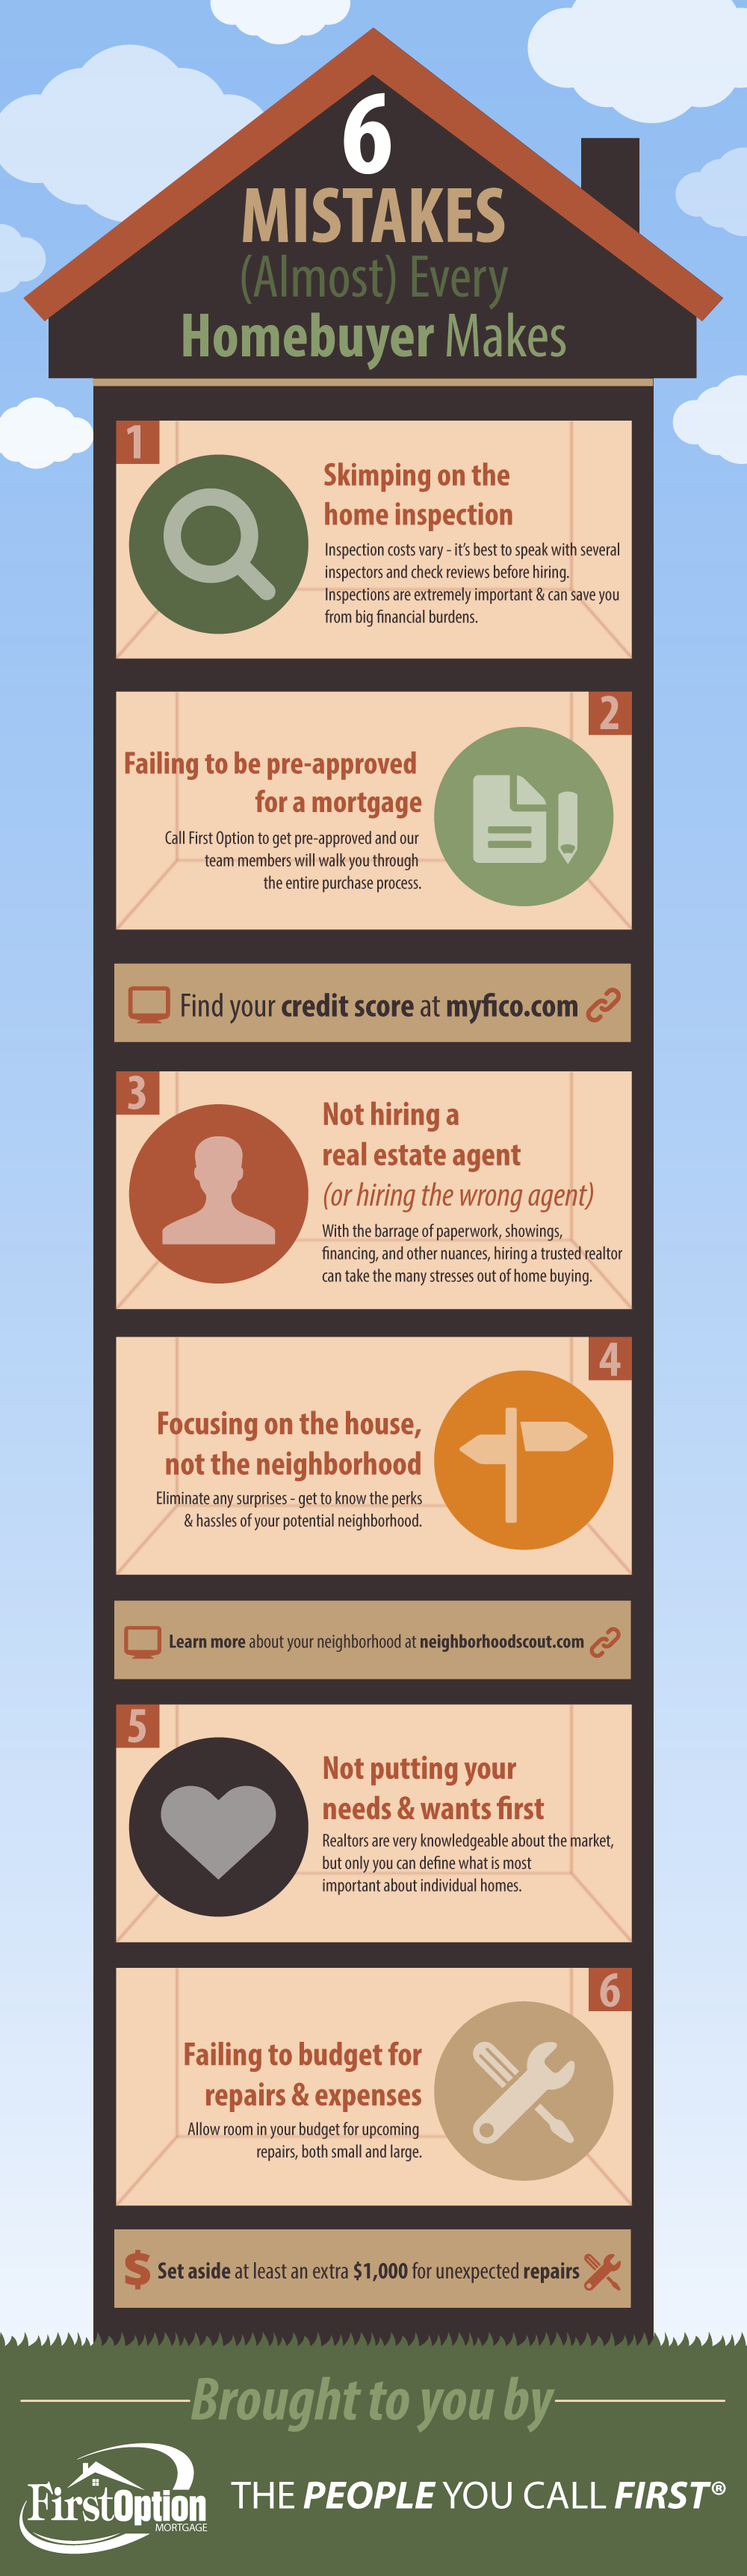 Mistakes homebuyers make